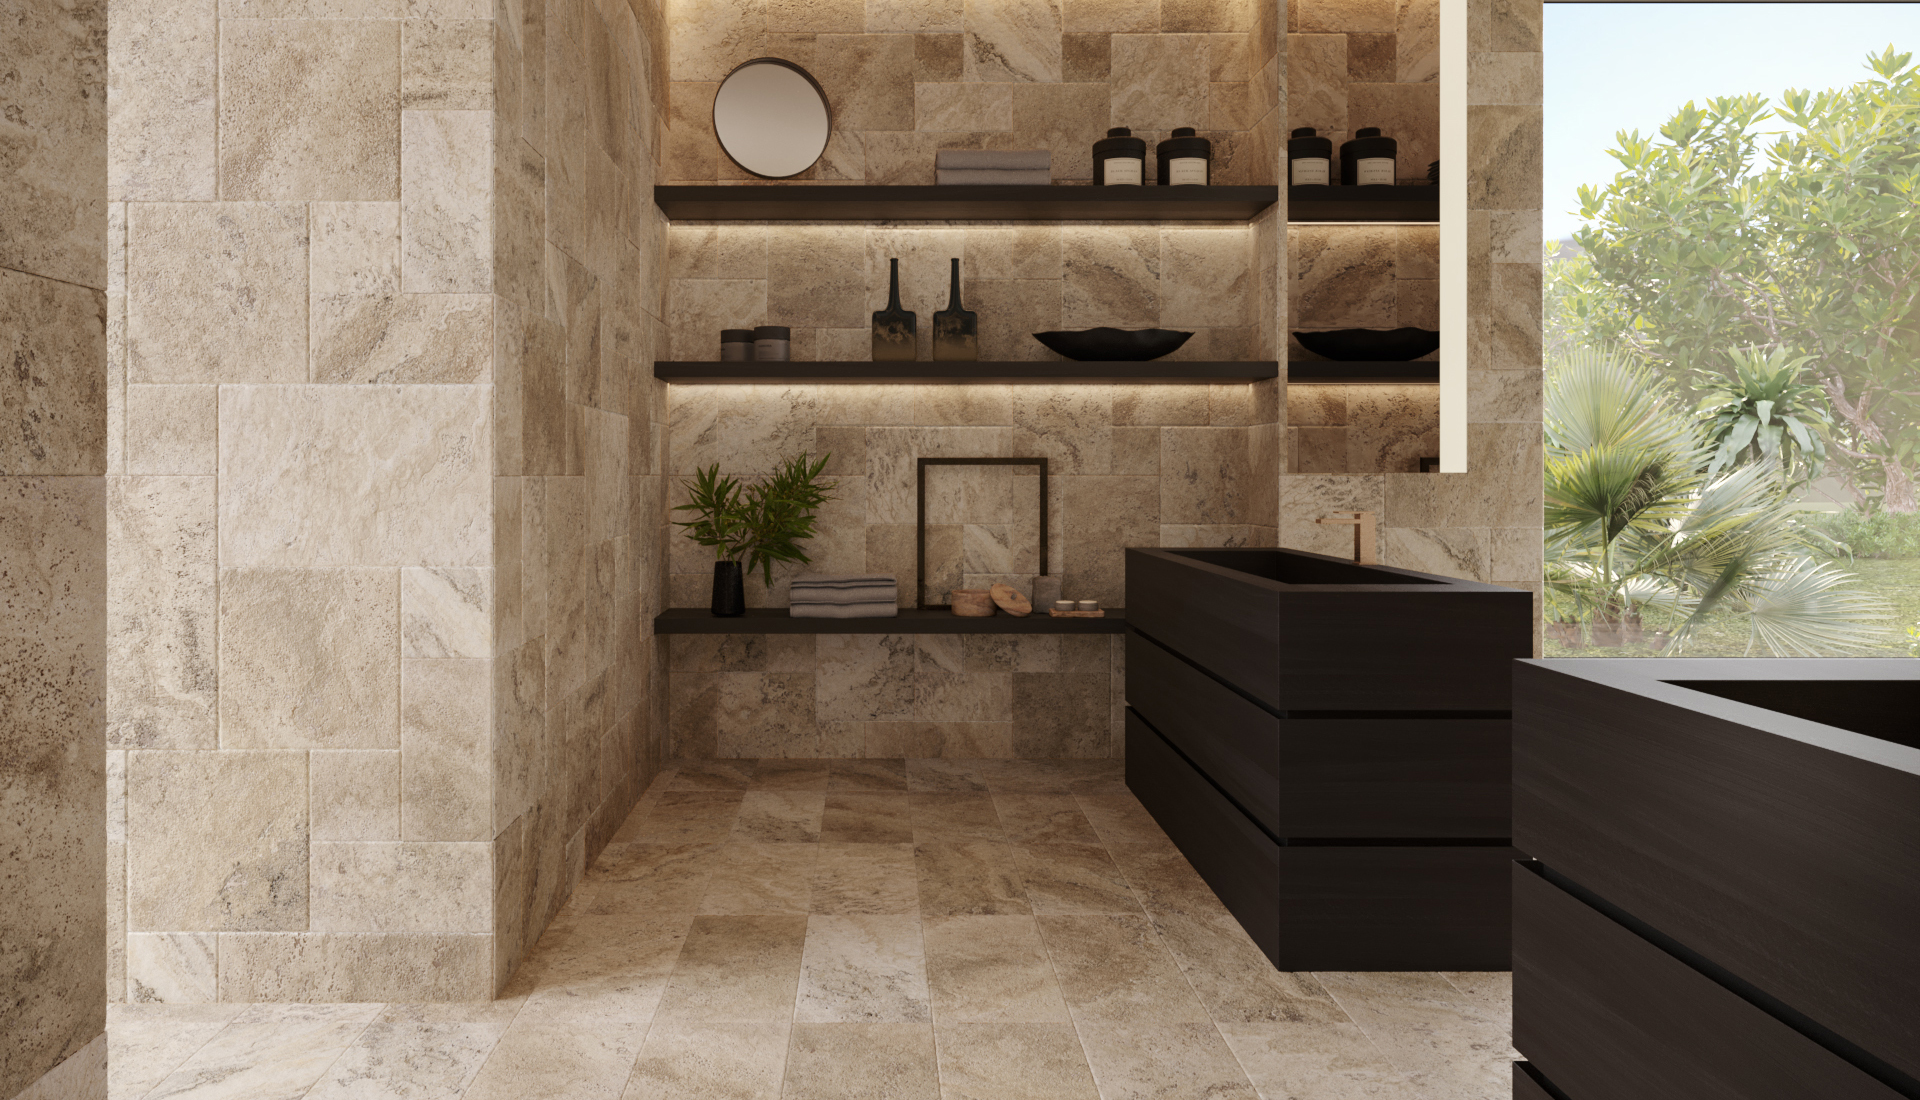 12 x 24 in / 30.5 x 61 cm Picasso Filled & Honed Travertine Tile